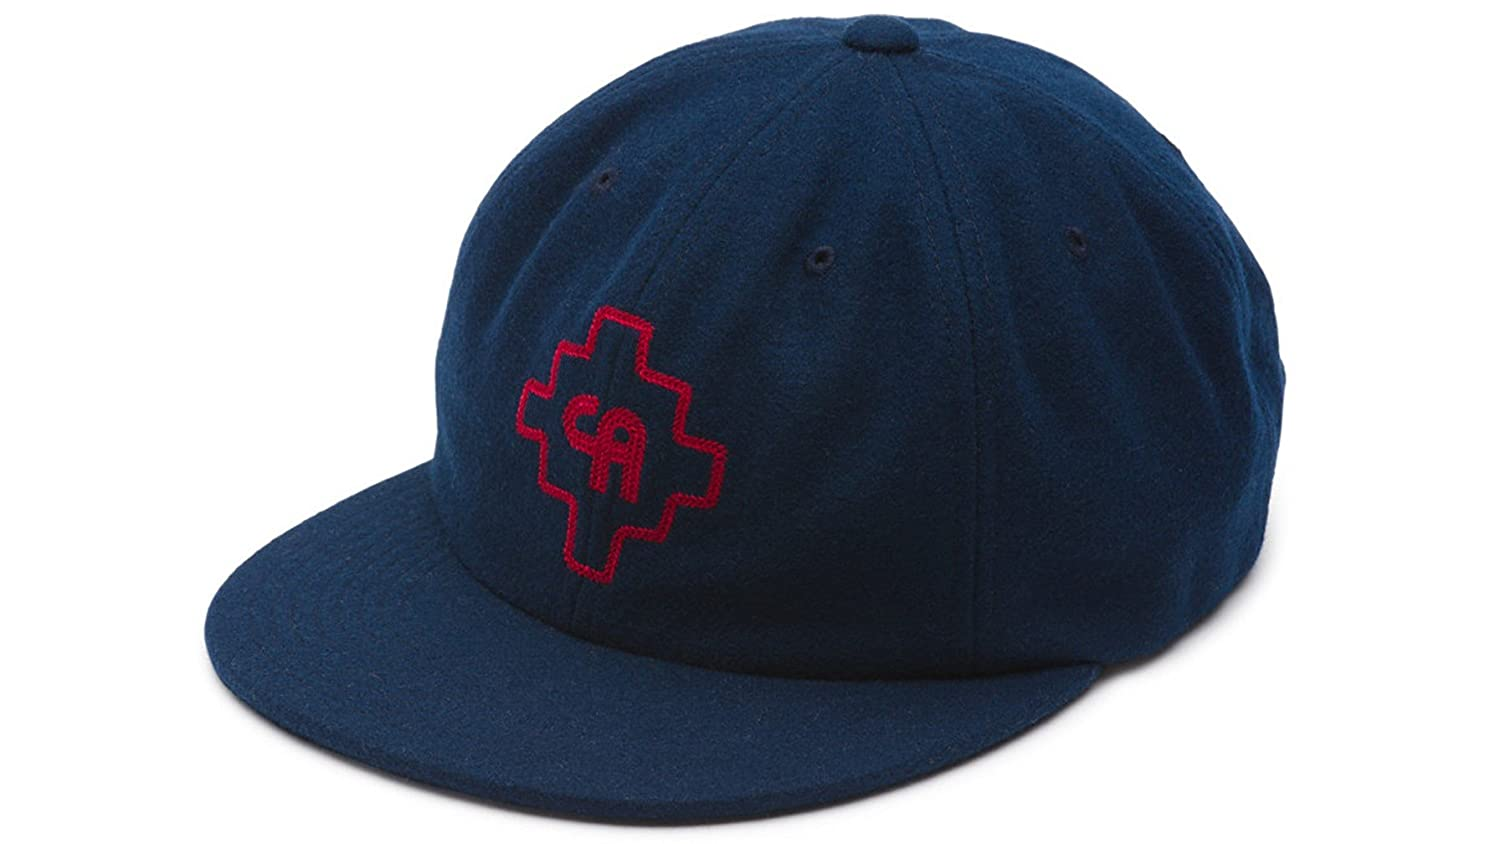 Amazon.com  Vans Shoes Off The Wall Men s Jarvis California Collection  Strapback Hat Cap - Navy  Clothing 99302a9bccc